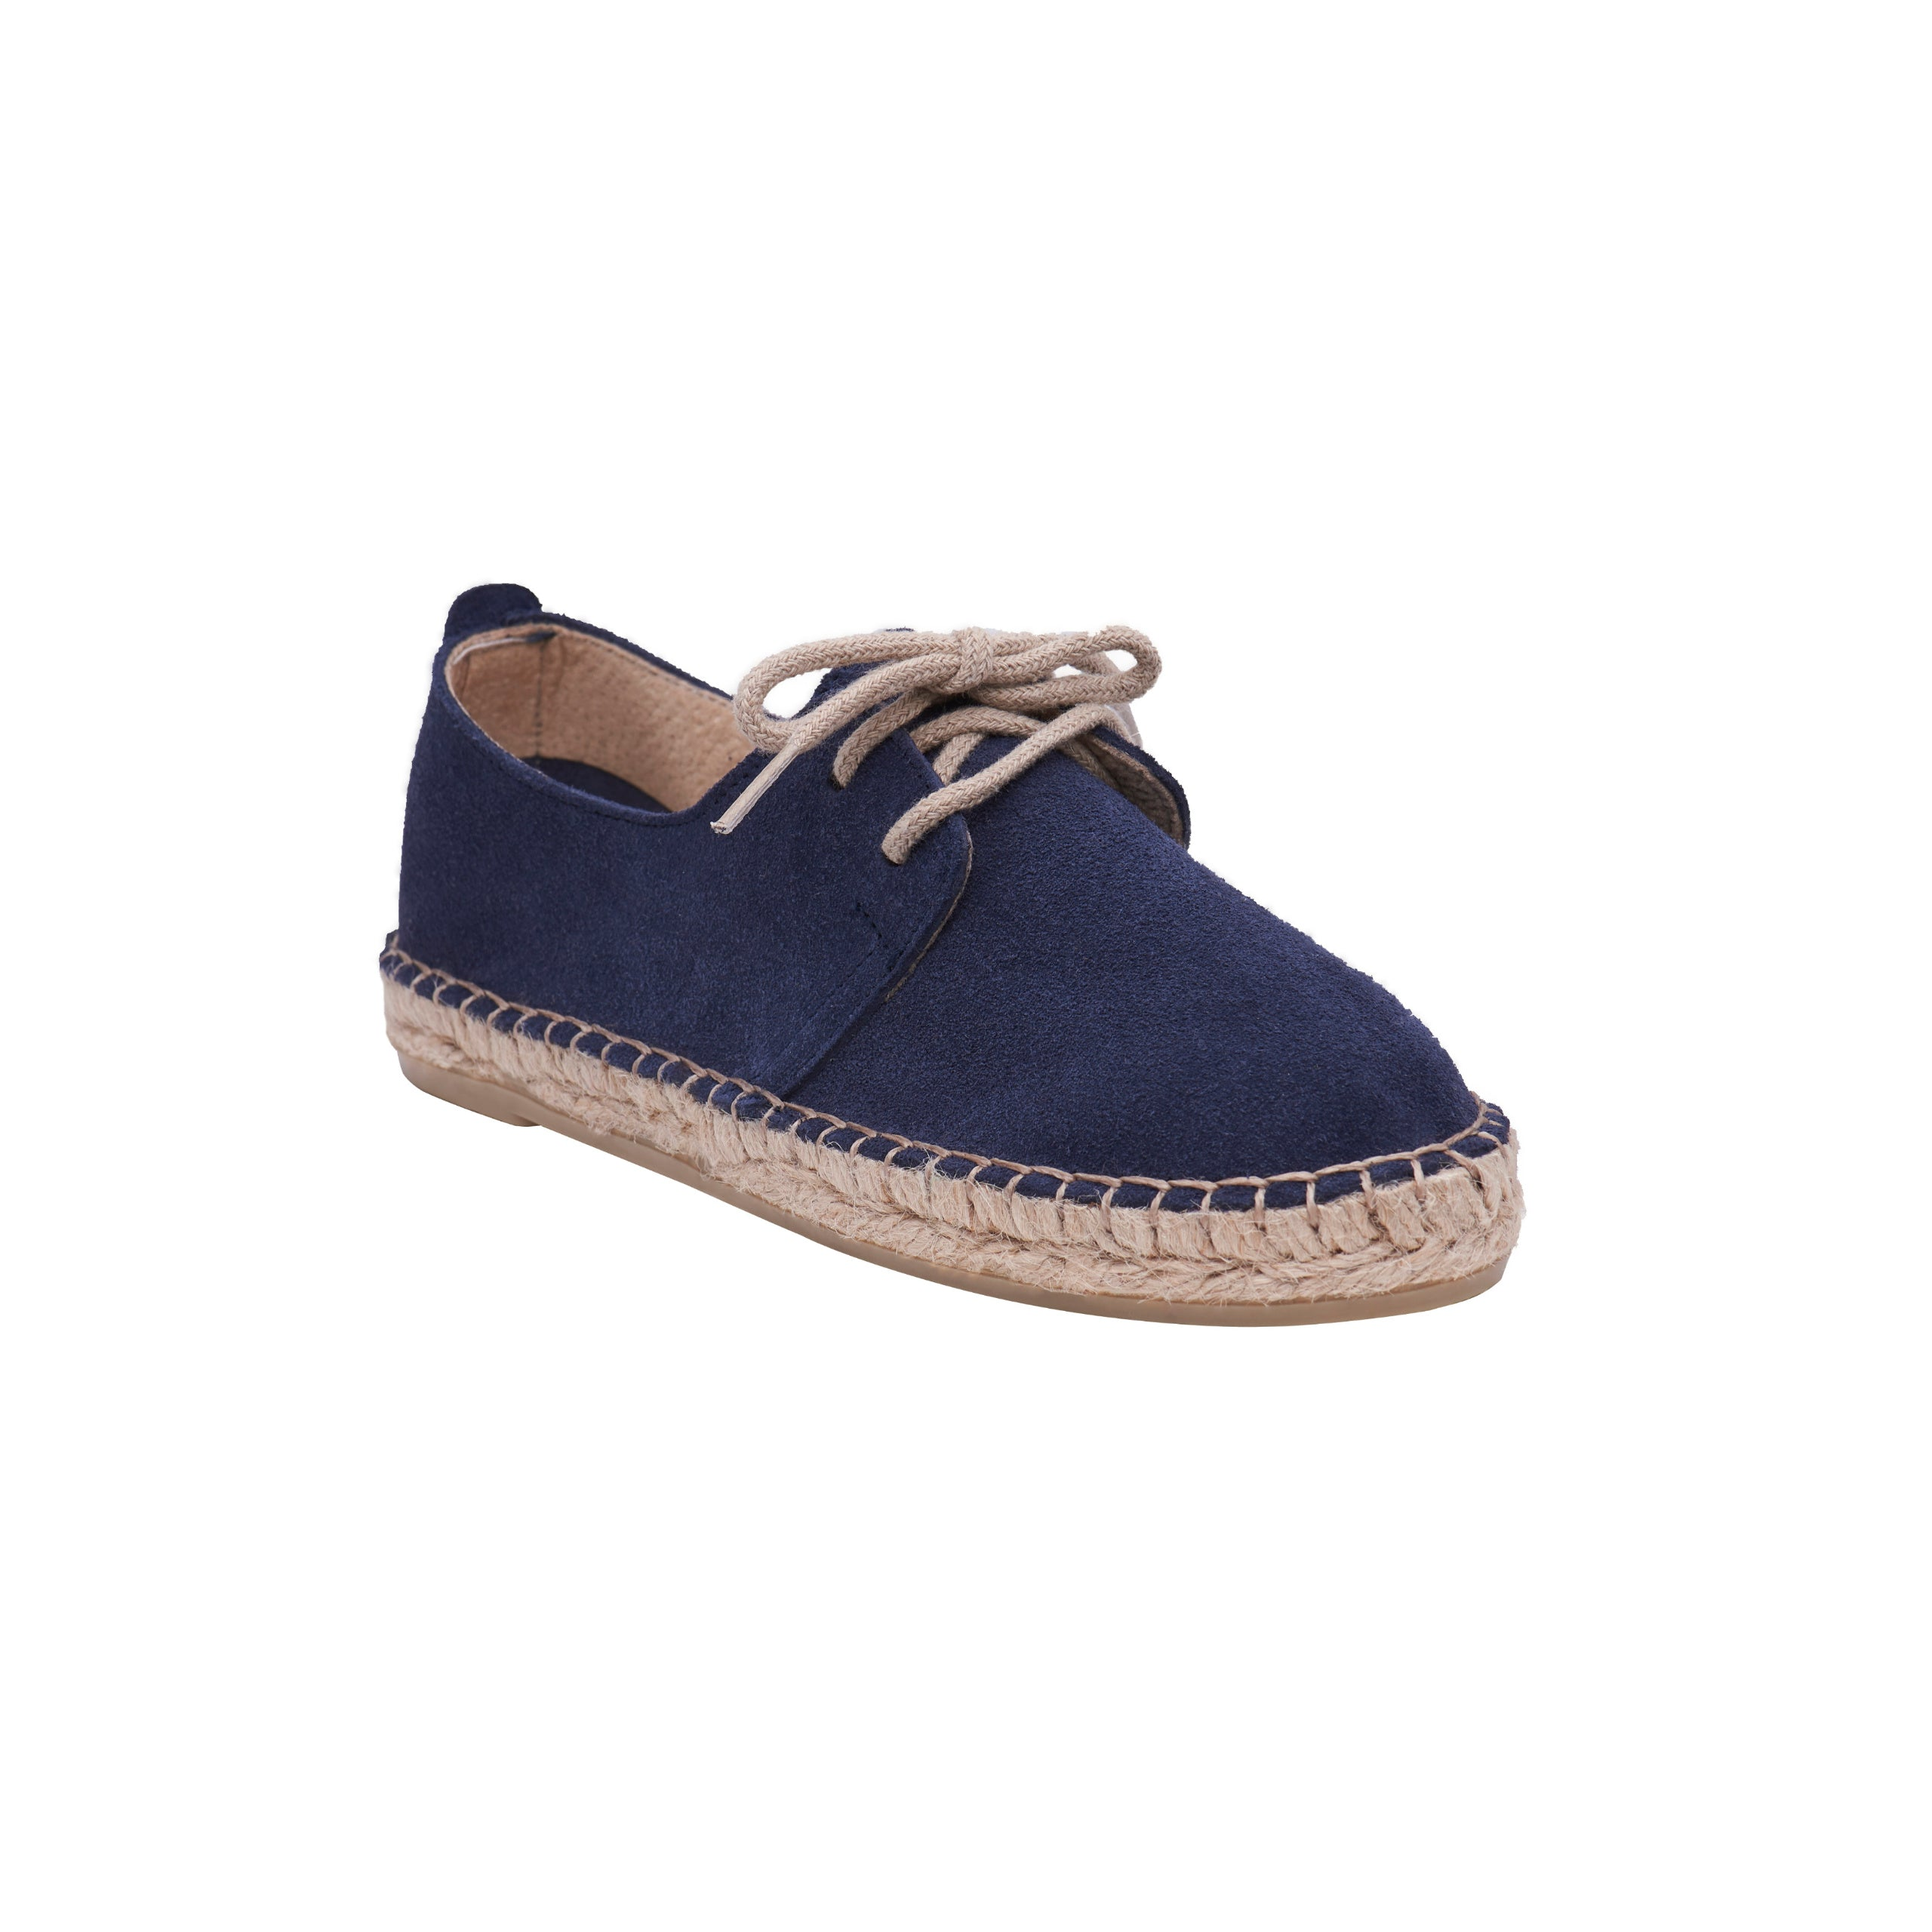 IBERIAN NAVY KIDS espadrilles [sizes 31, 32, 33, 34, 35, 36, 37, 38, 39, 40 available]